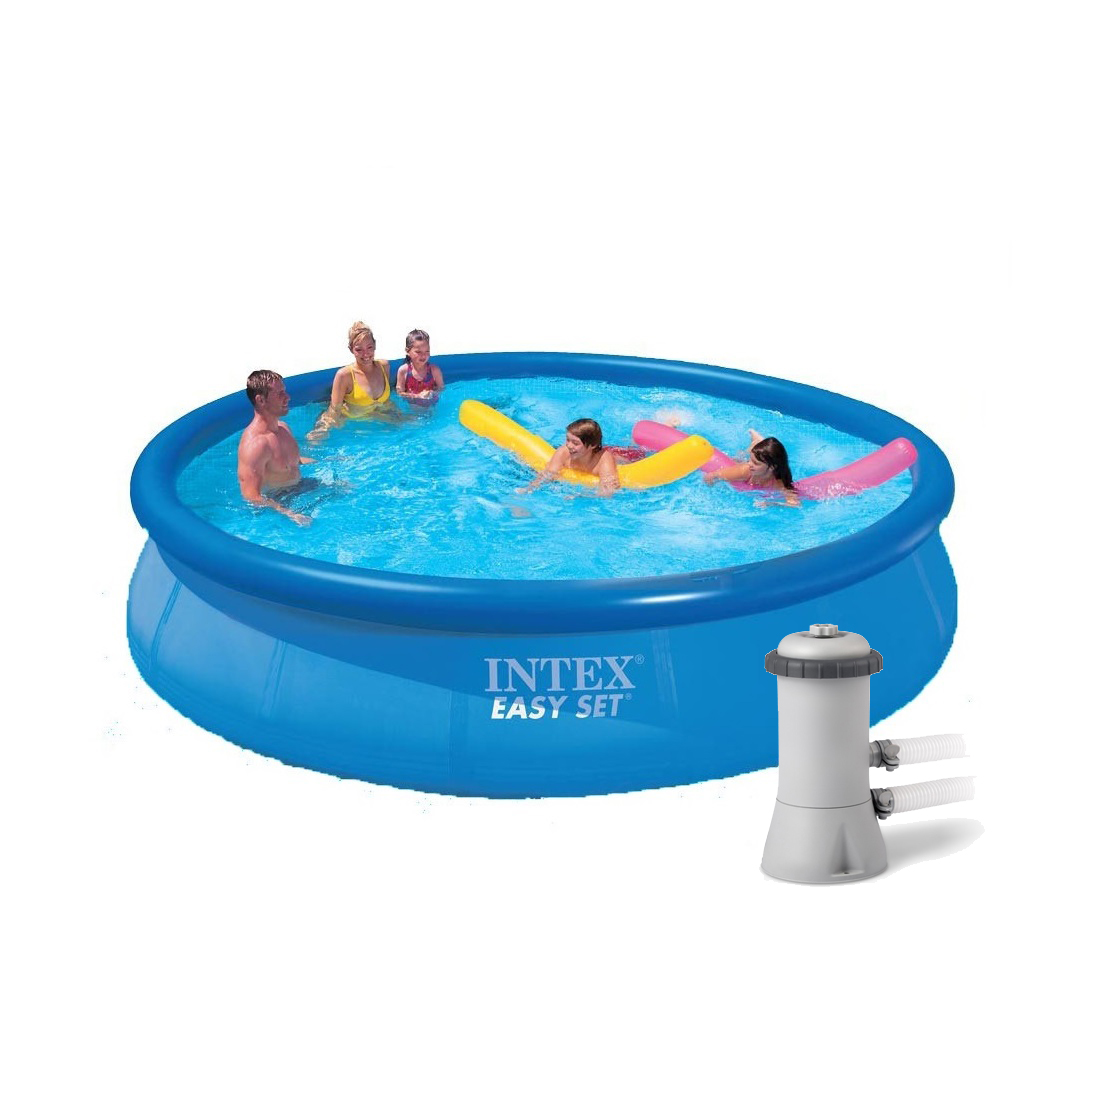 Piscina Intex Niños Piscina Inflable Intex 28160 Bomba 28604 457cm 10681l